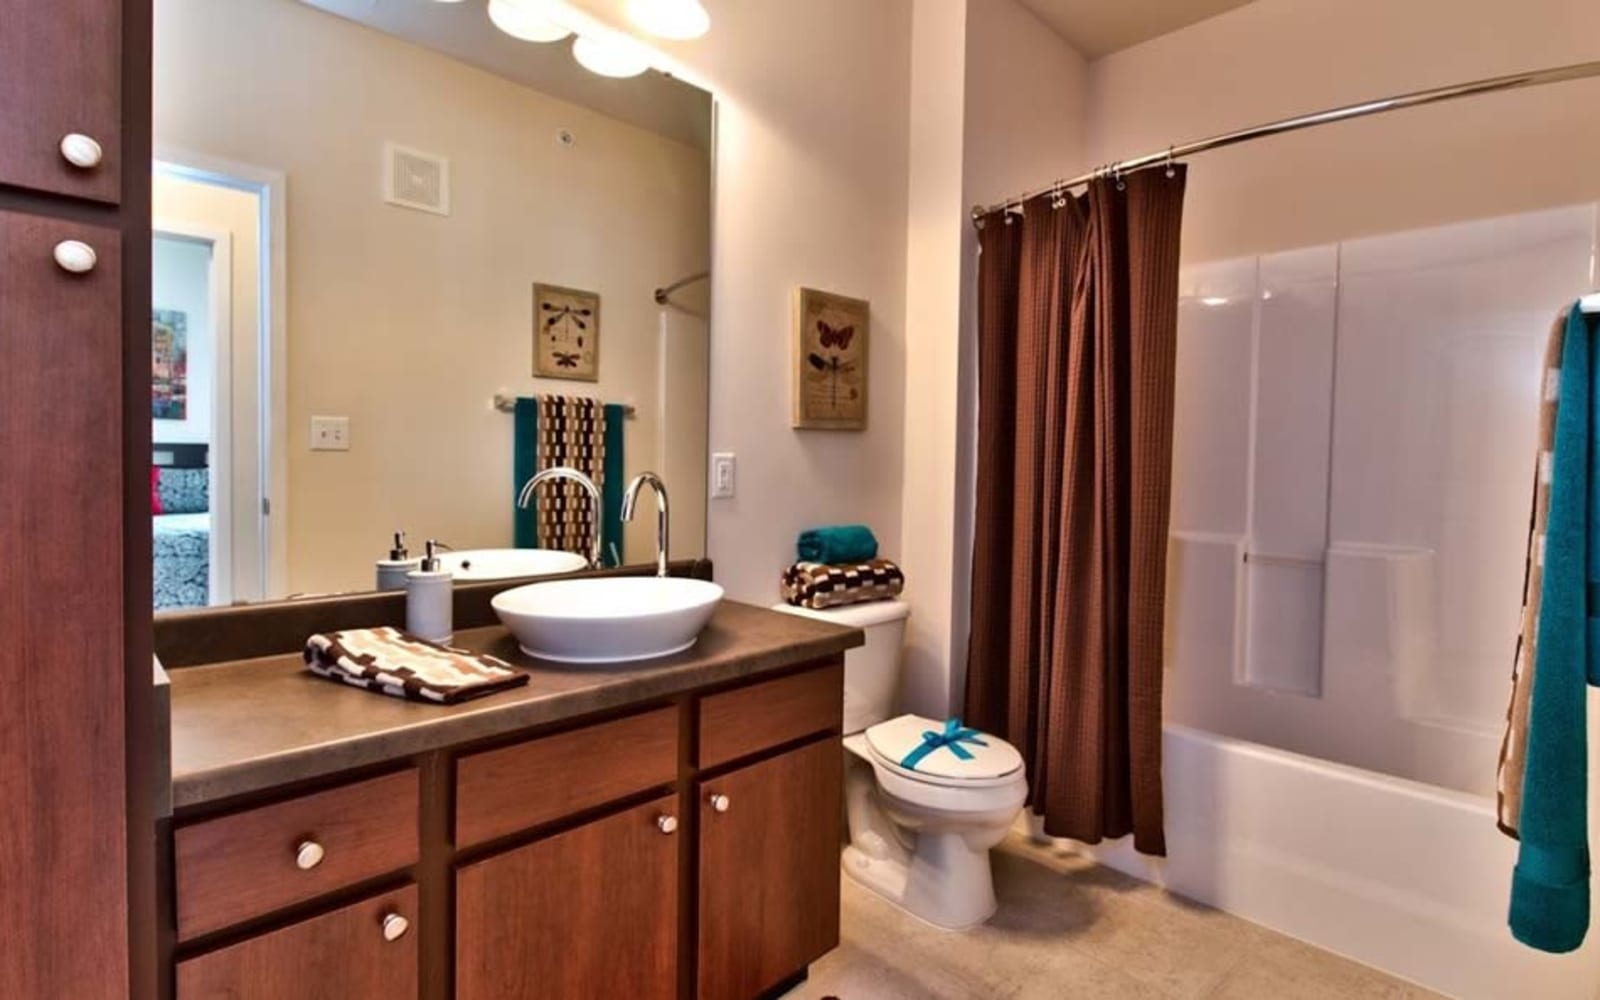 Bathrooms with storage space at Aventura at Richmond in Saint Peters, Missouri.